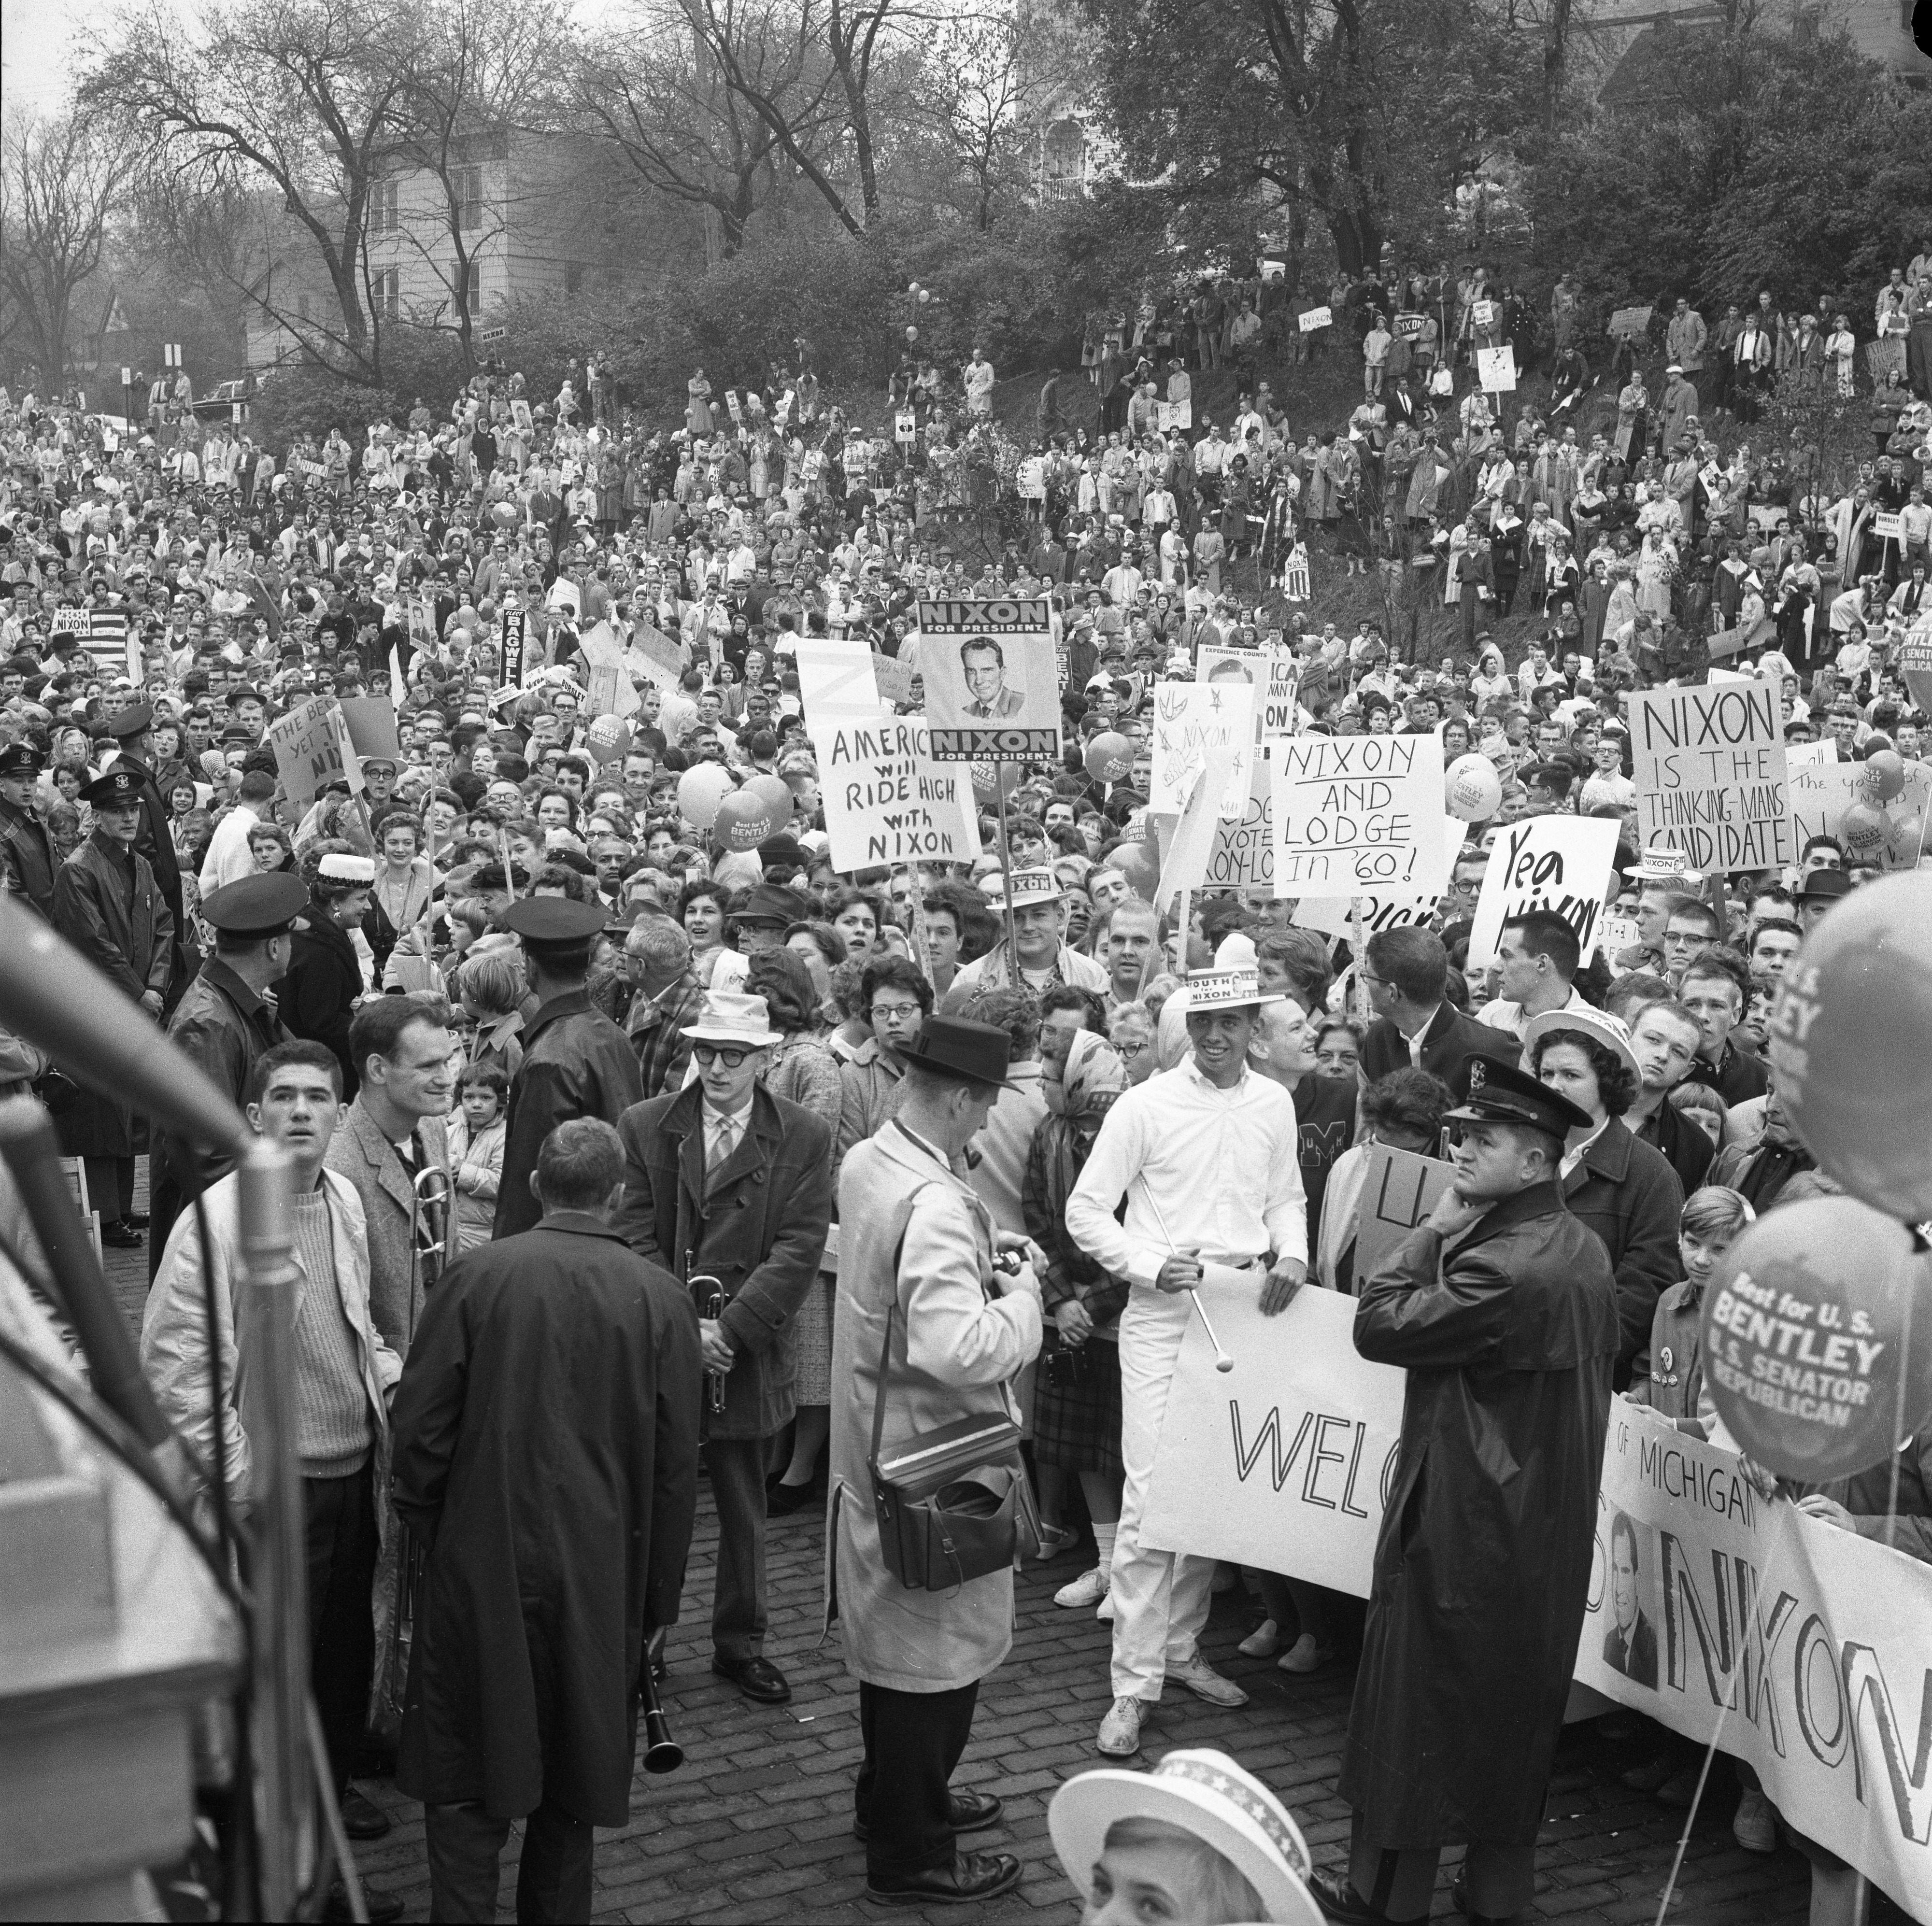 Crowd during visit by presidential candidate Richard Nixon, October 1960 image